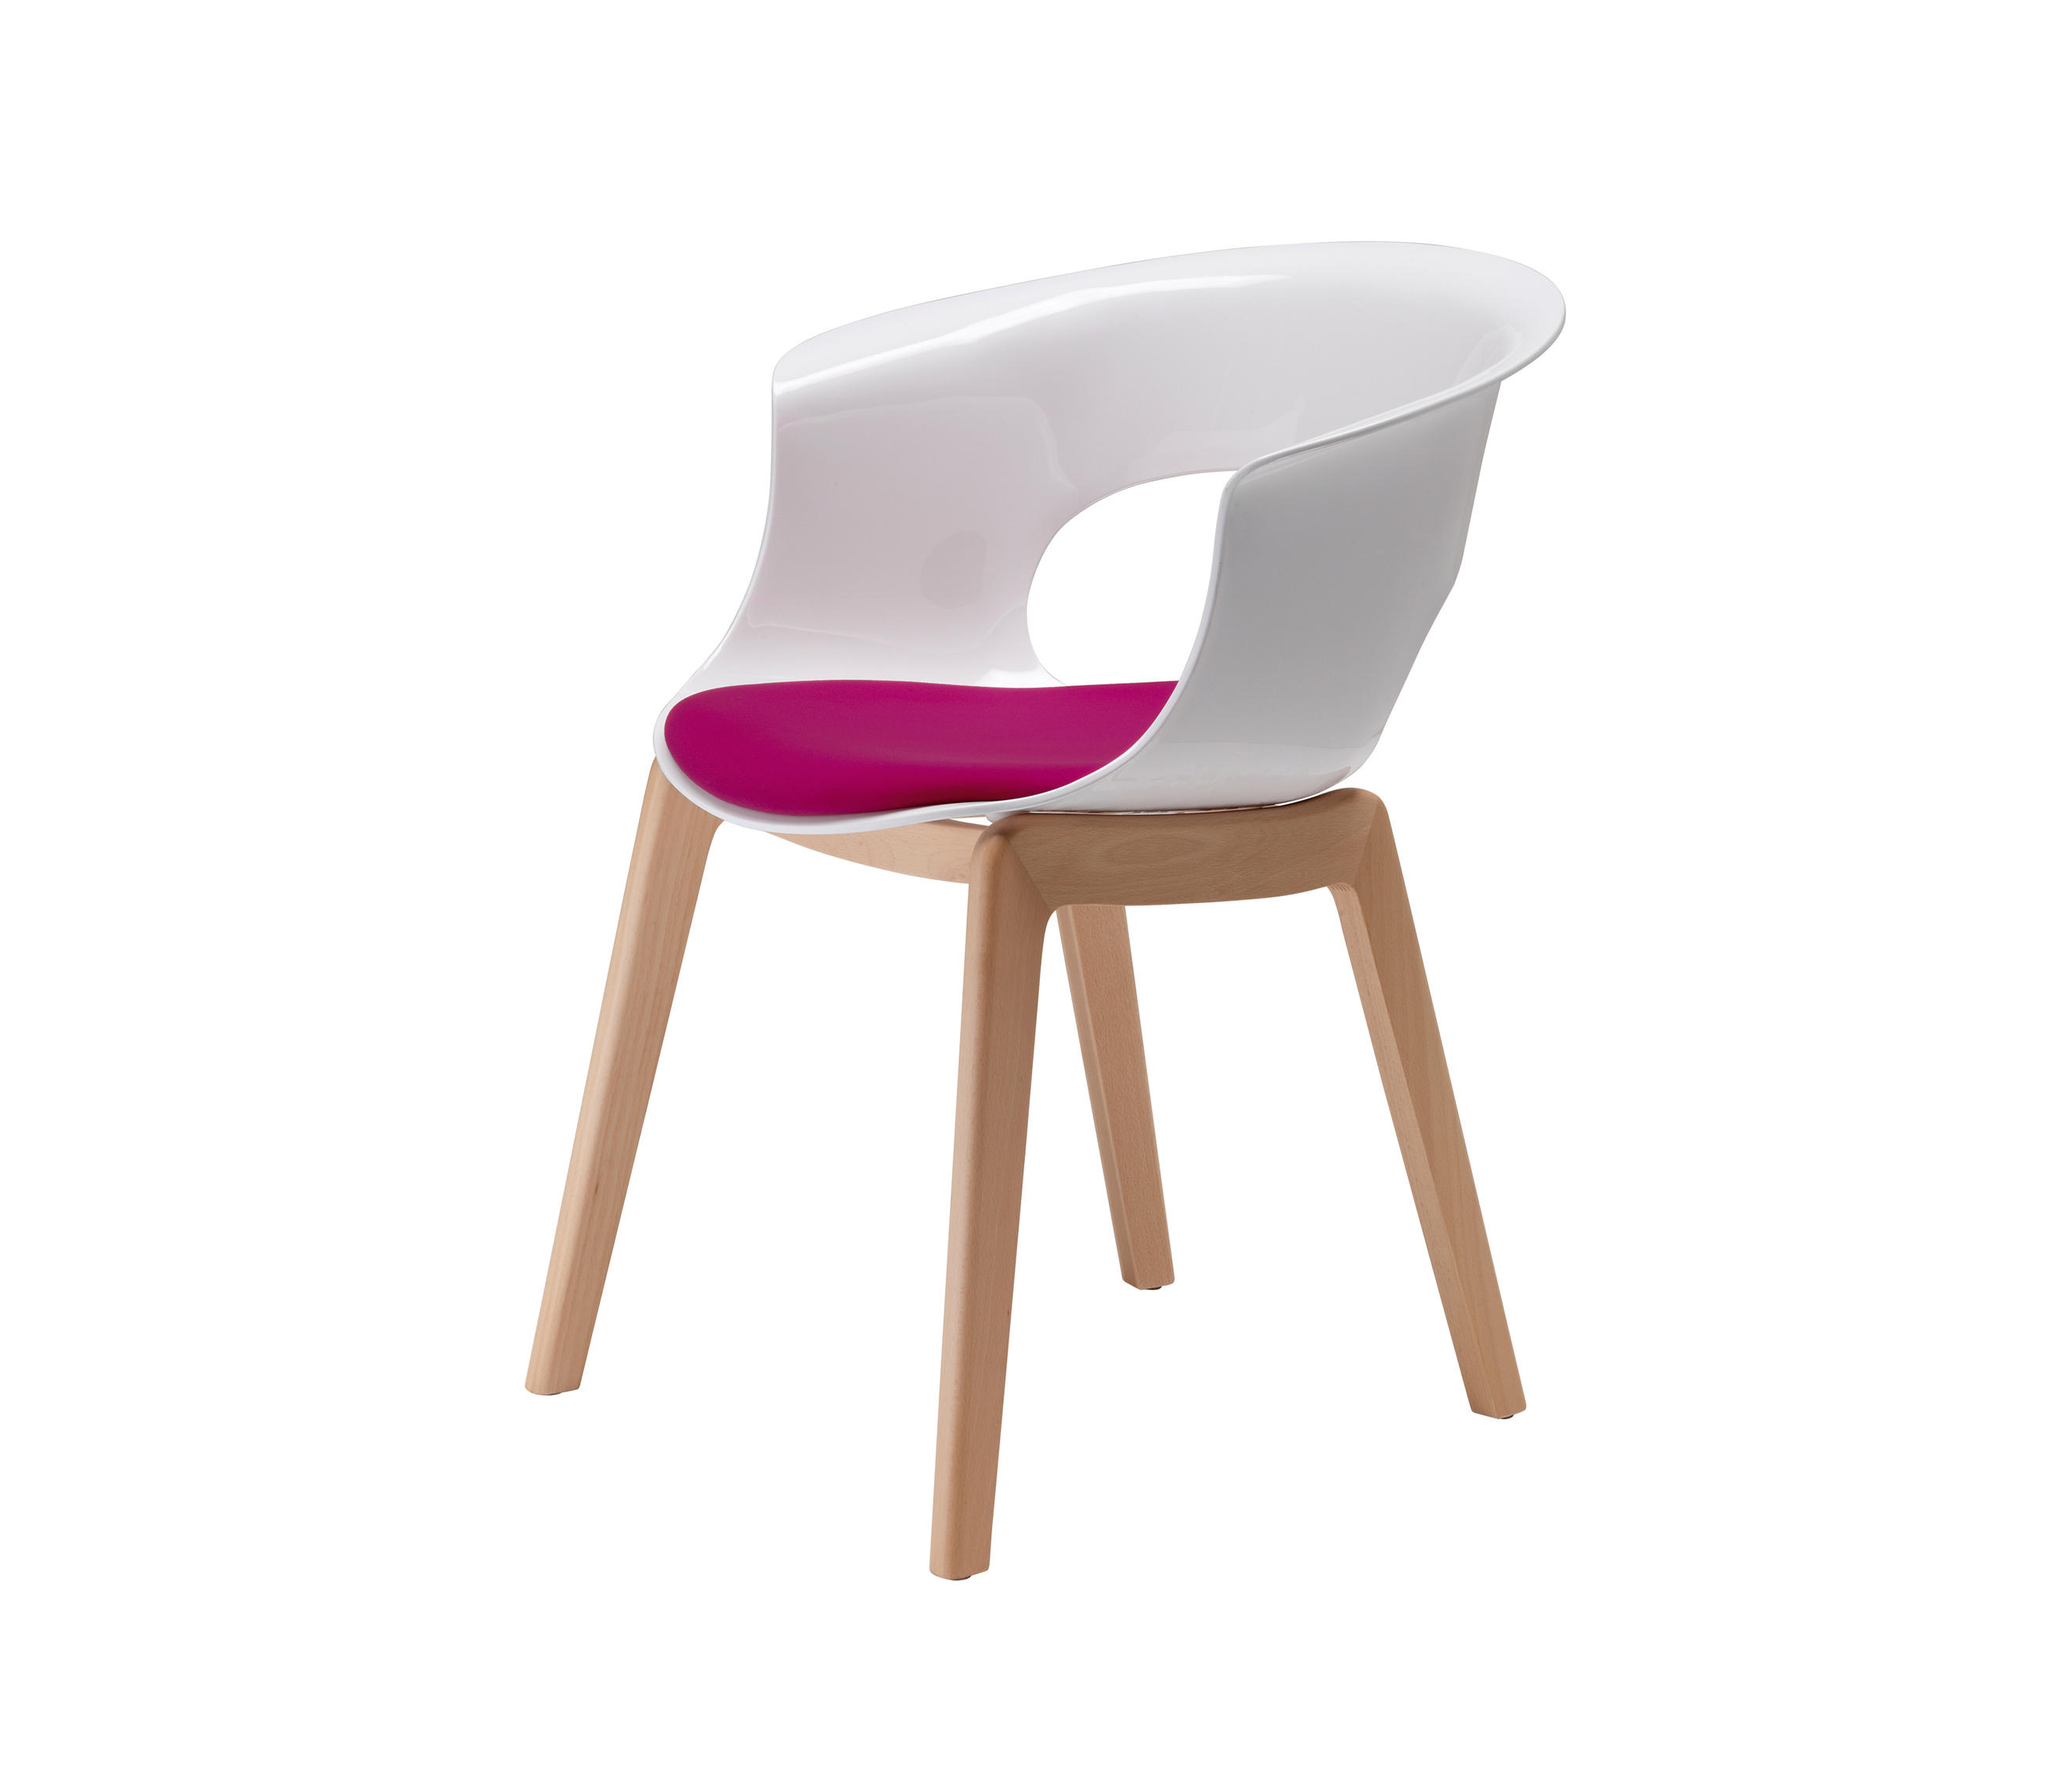 Chaise Scab: NATURAL MISS B ANTISHOCK - Chaises De Scab Design